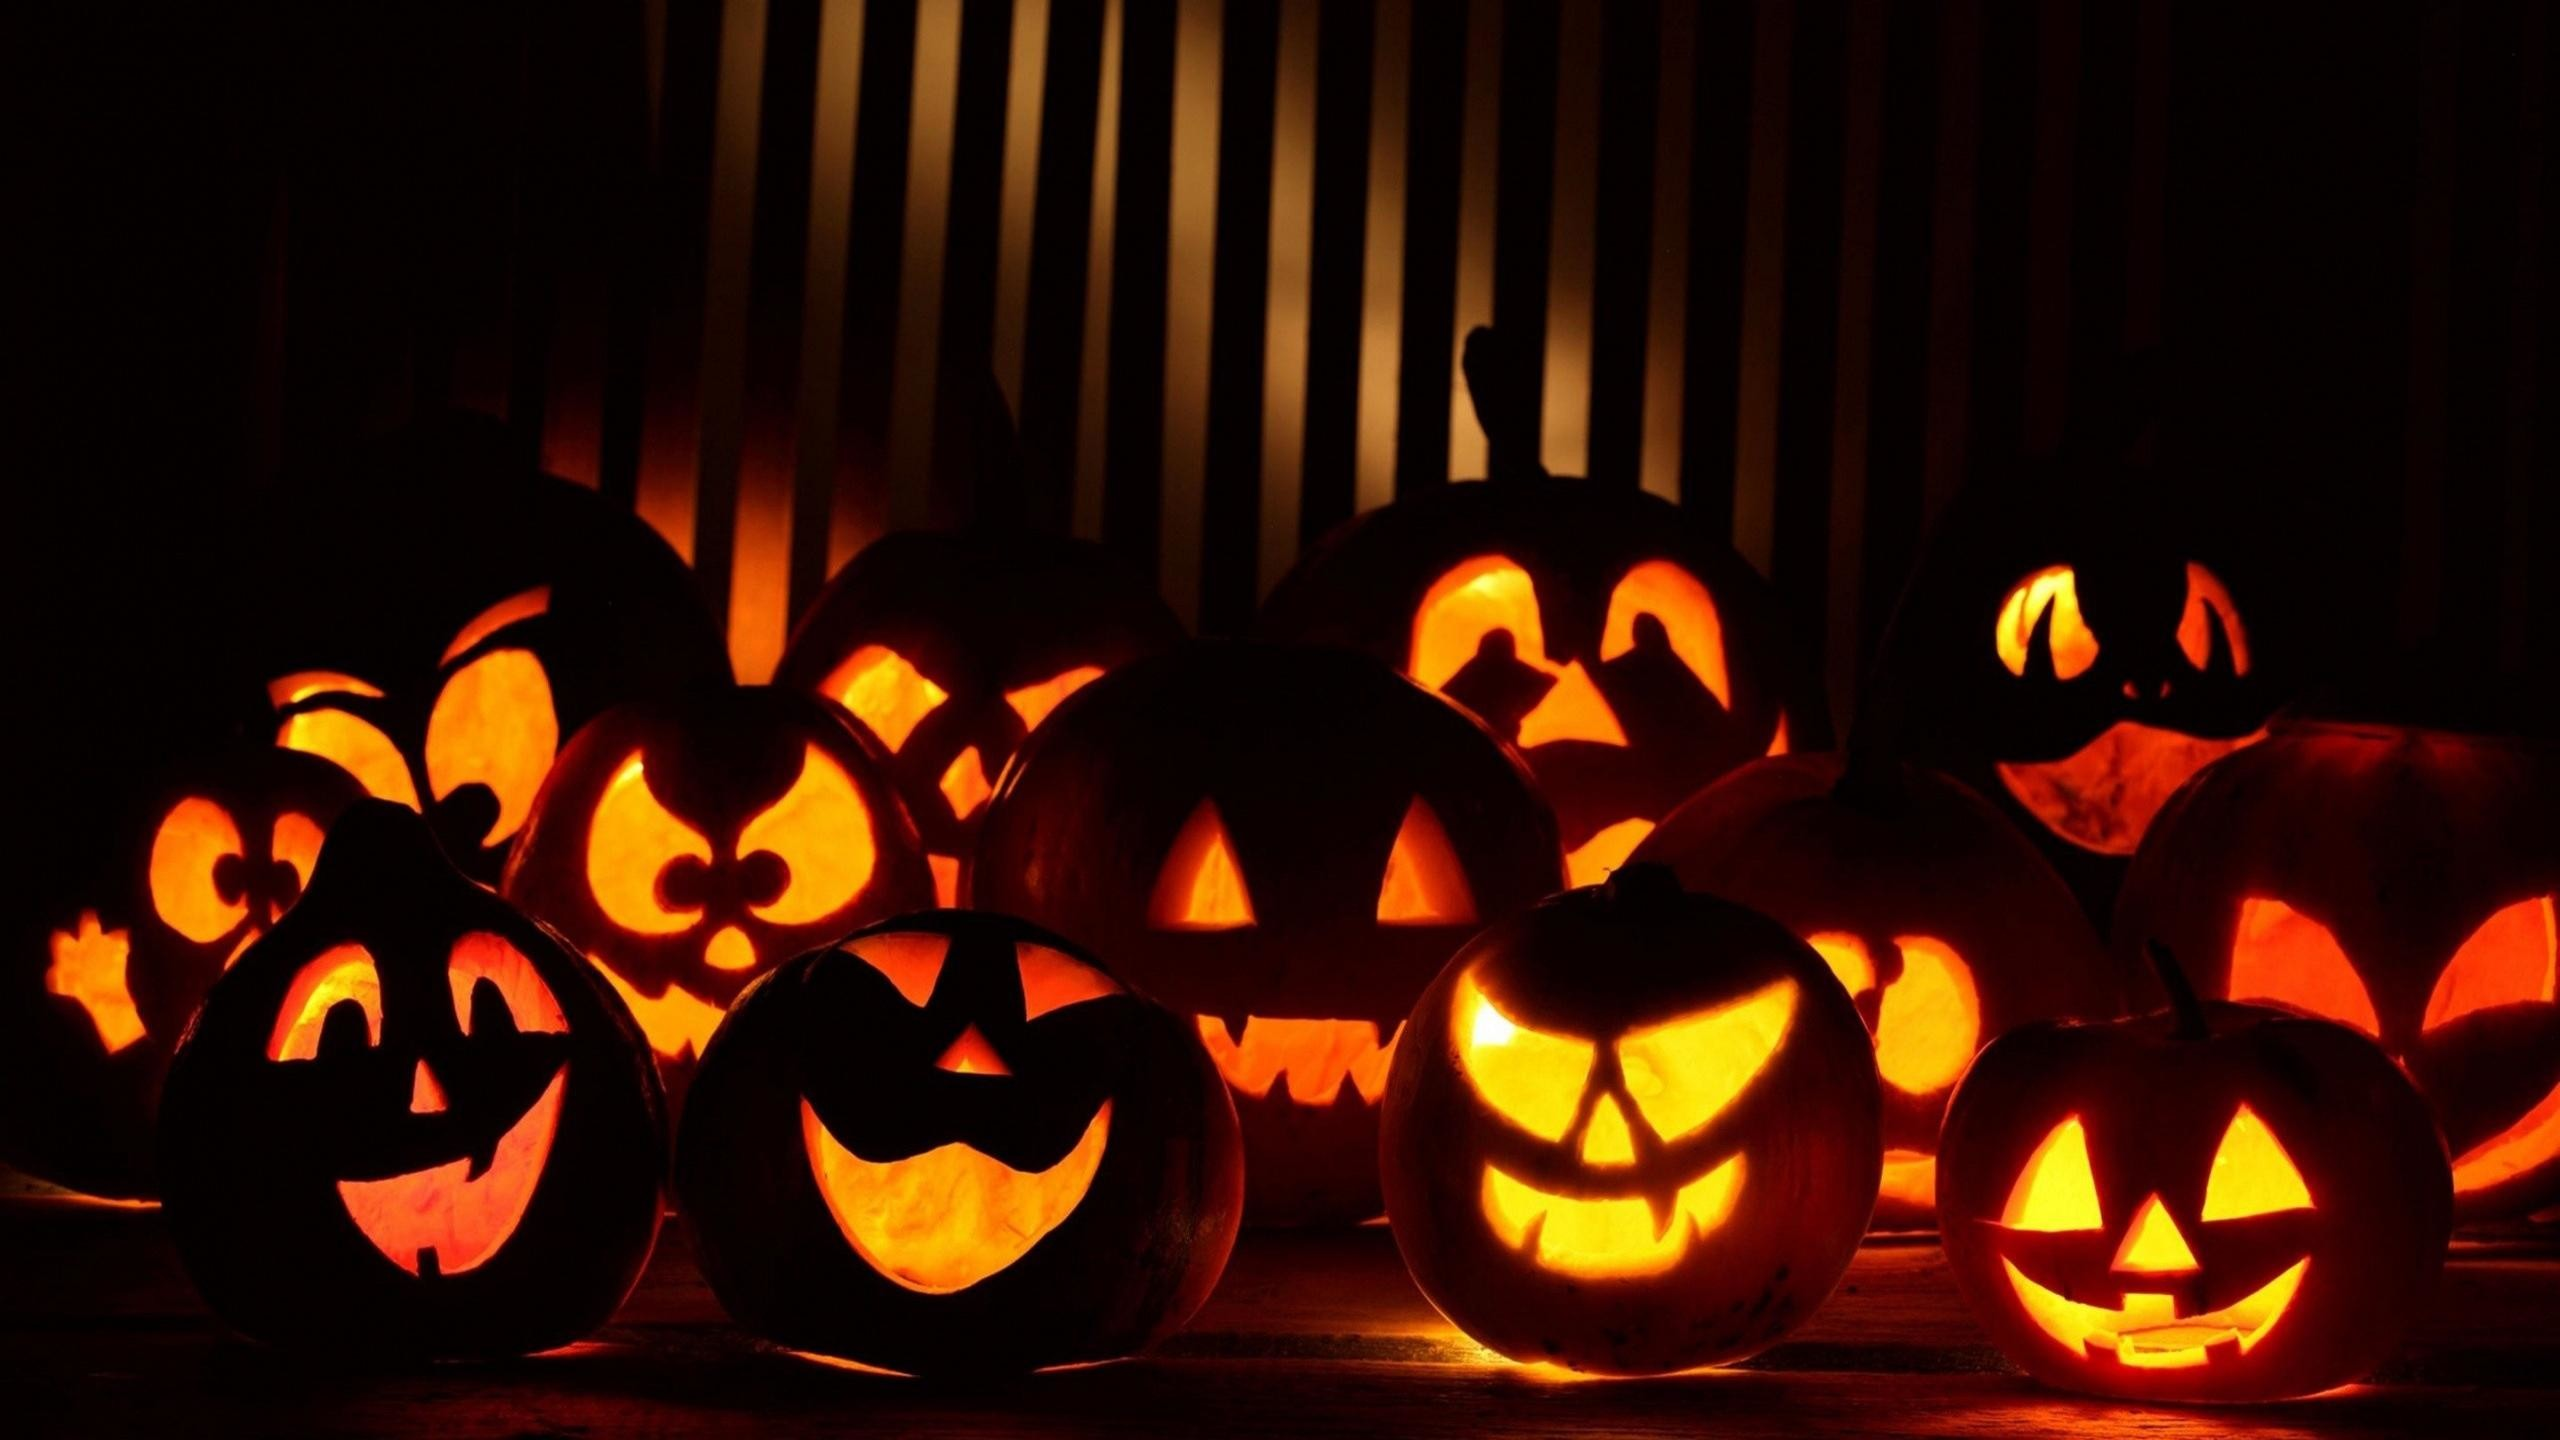 Halloween-Pumpkin-Dark-HD-Wallpapers